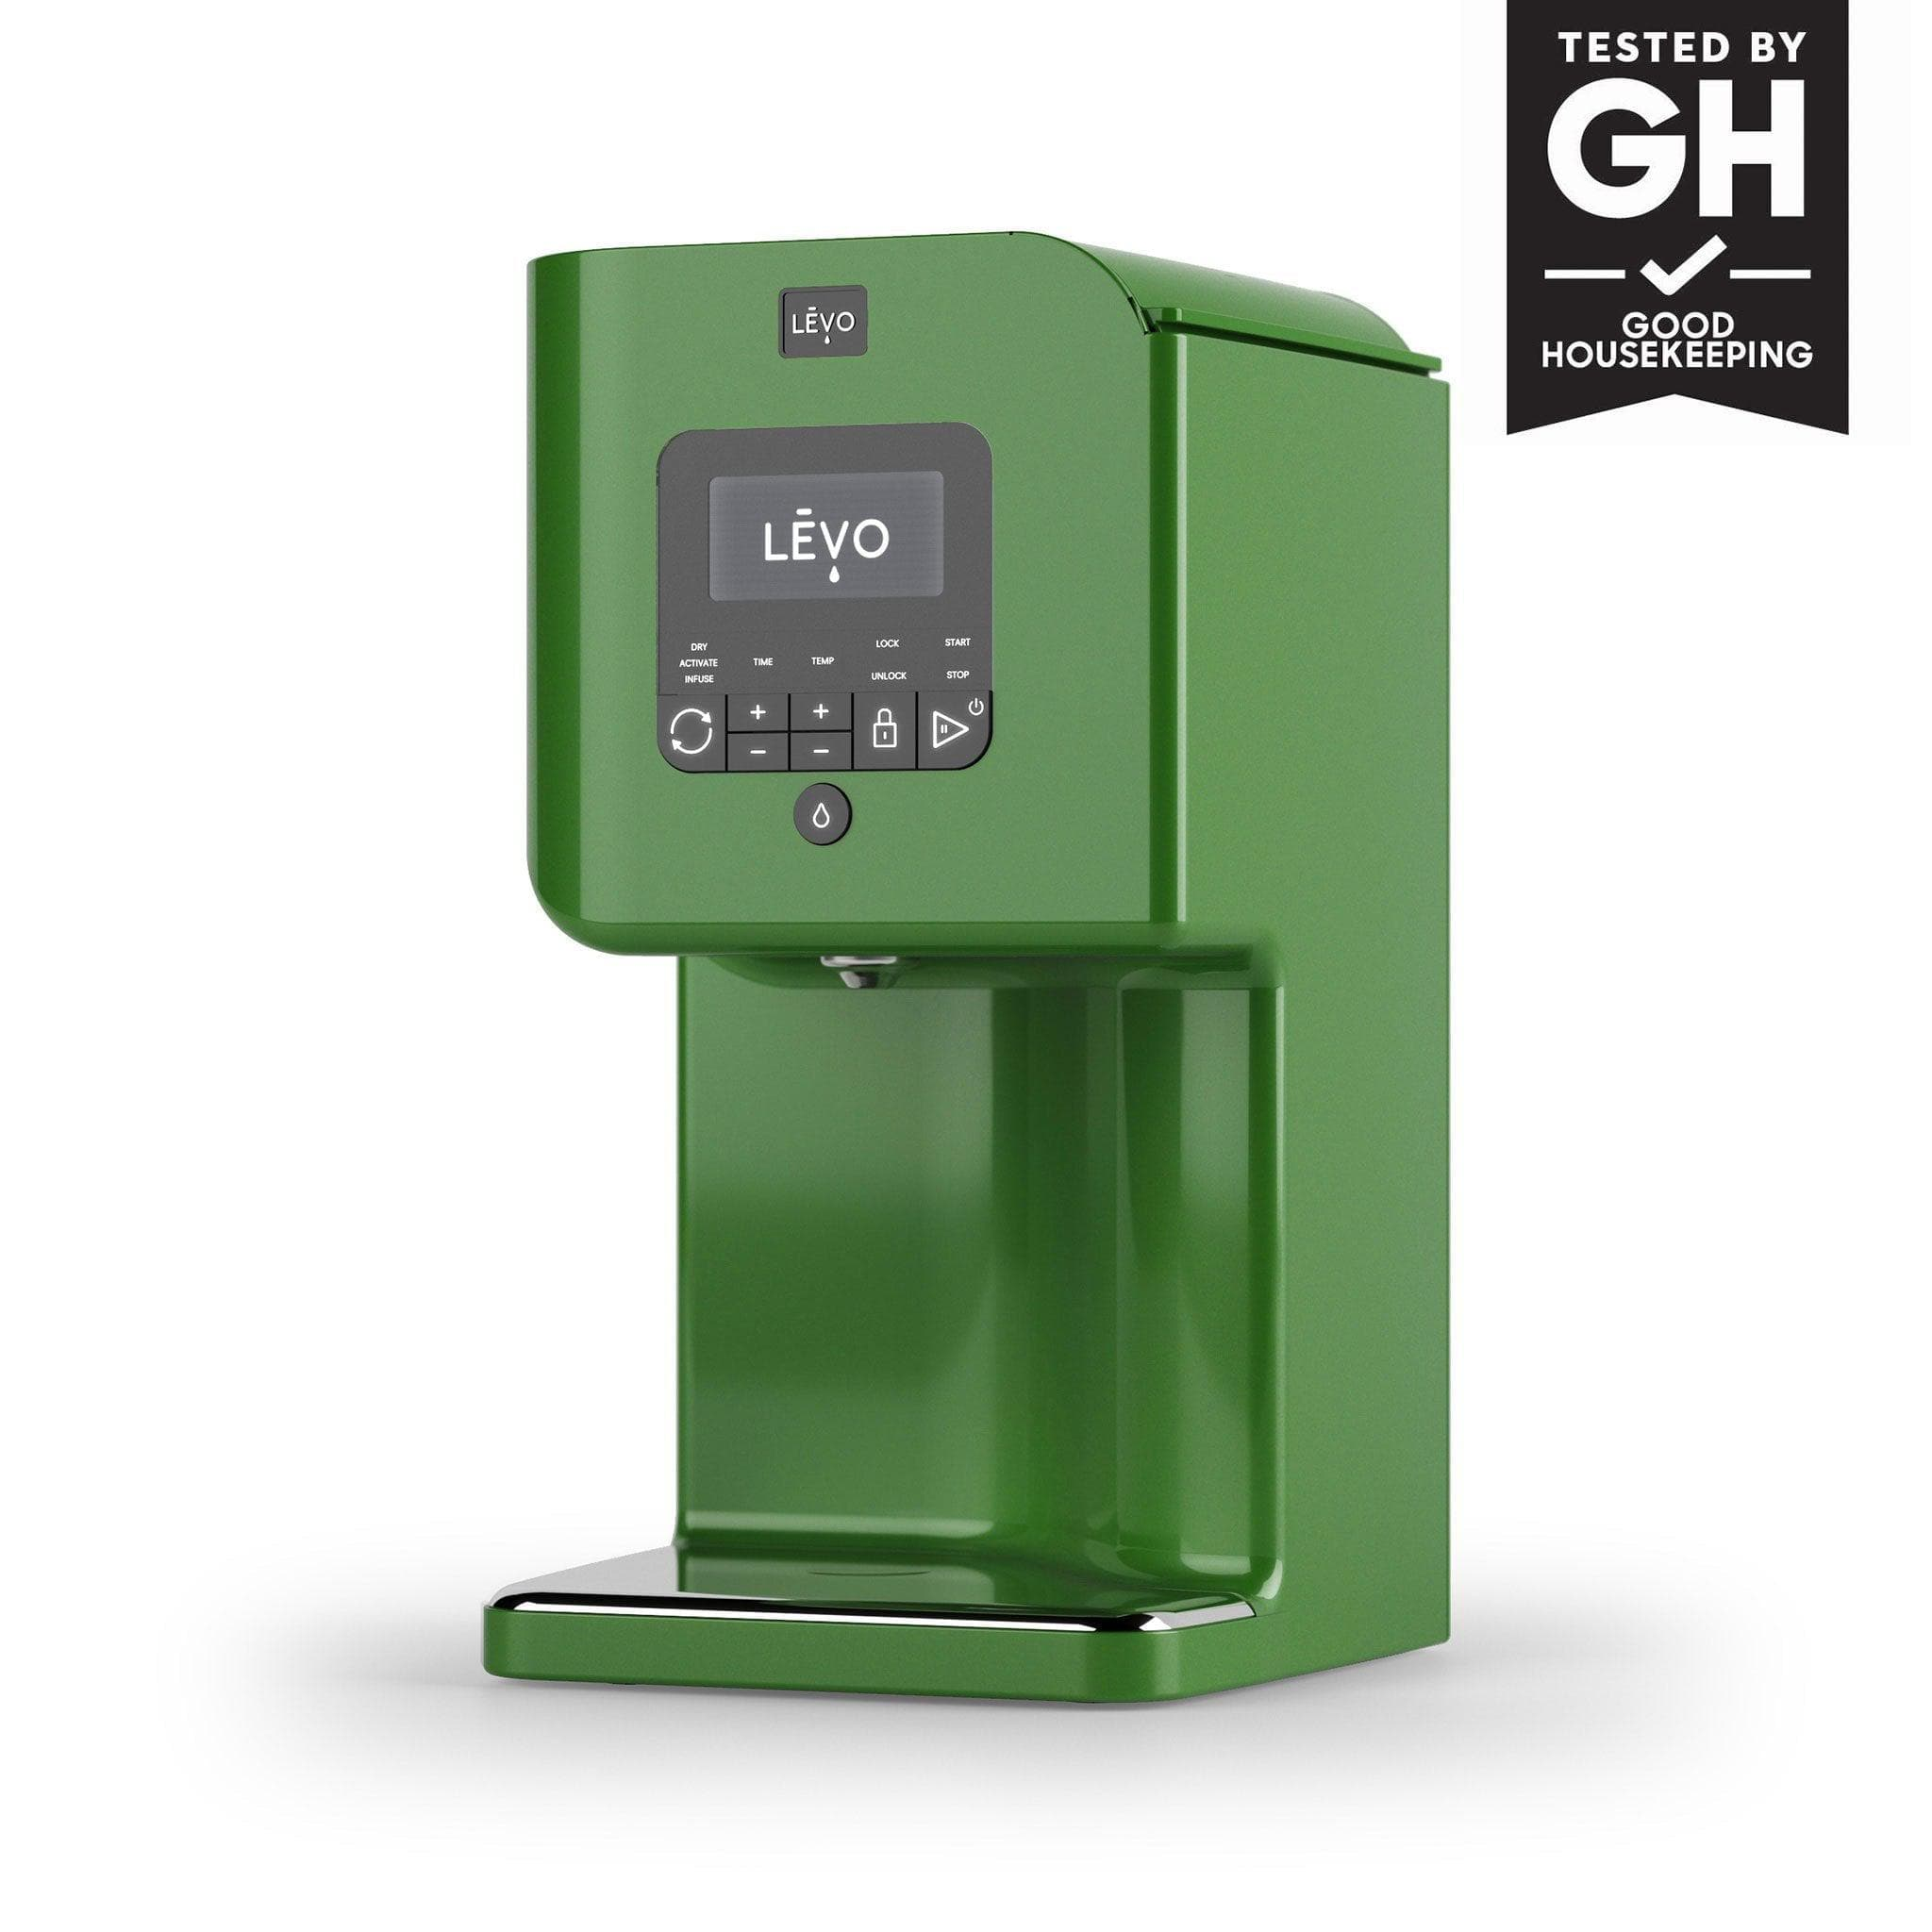 LEVO II in NEW Garden Green - tested and approved by Good Housekeeping.